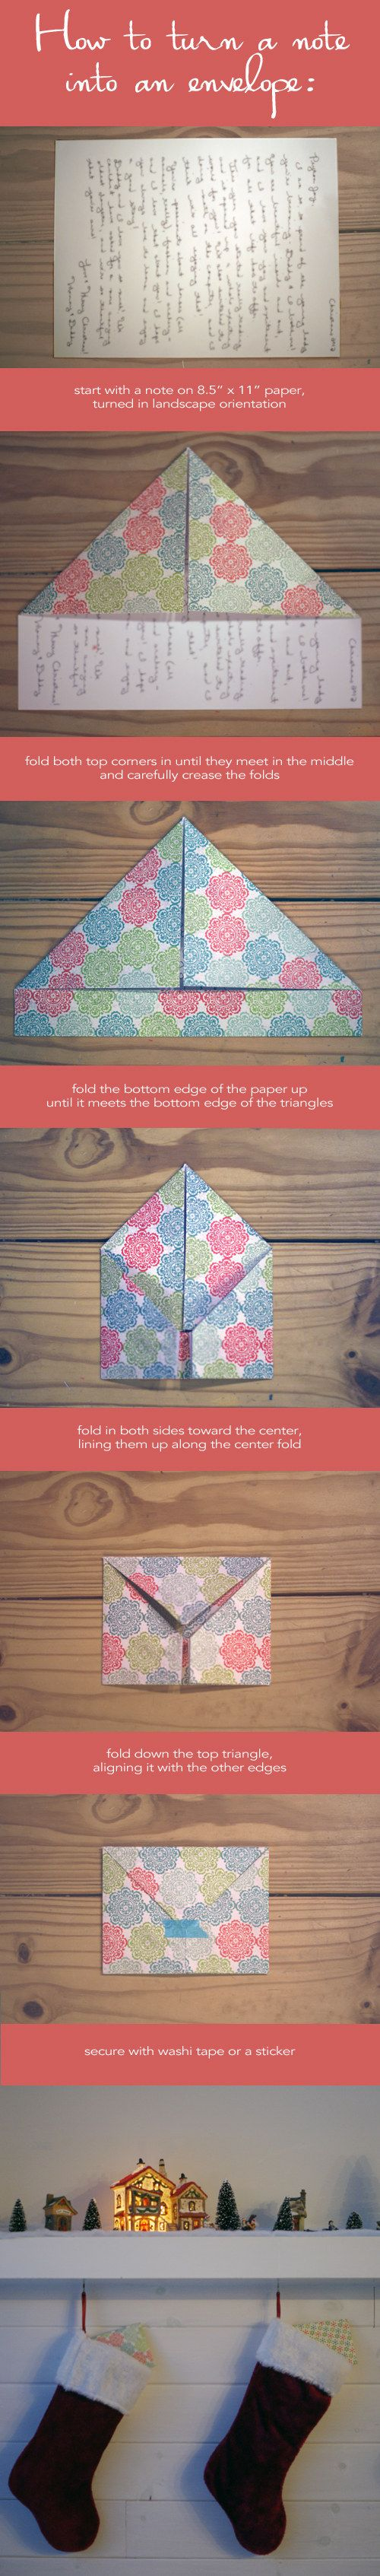 Making a Note an envelope! | 25 Tutorials To Teach You To Fold Things Like An Actual Adult